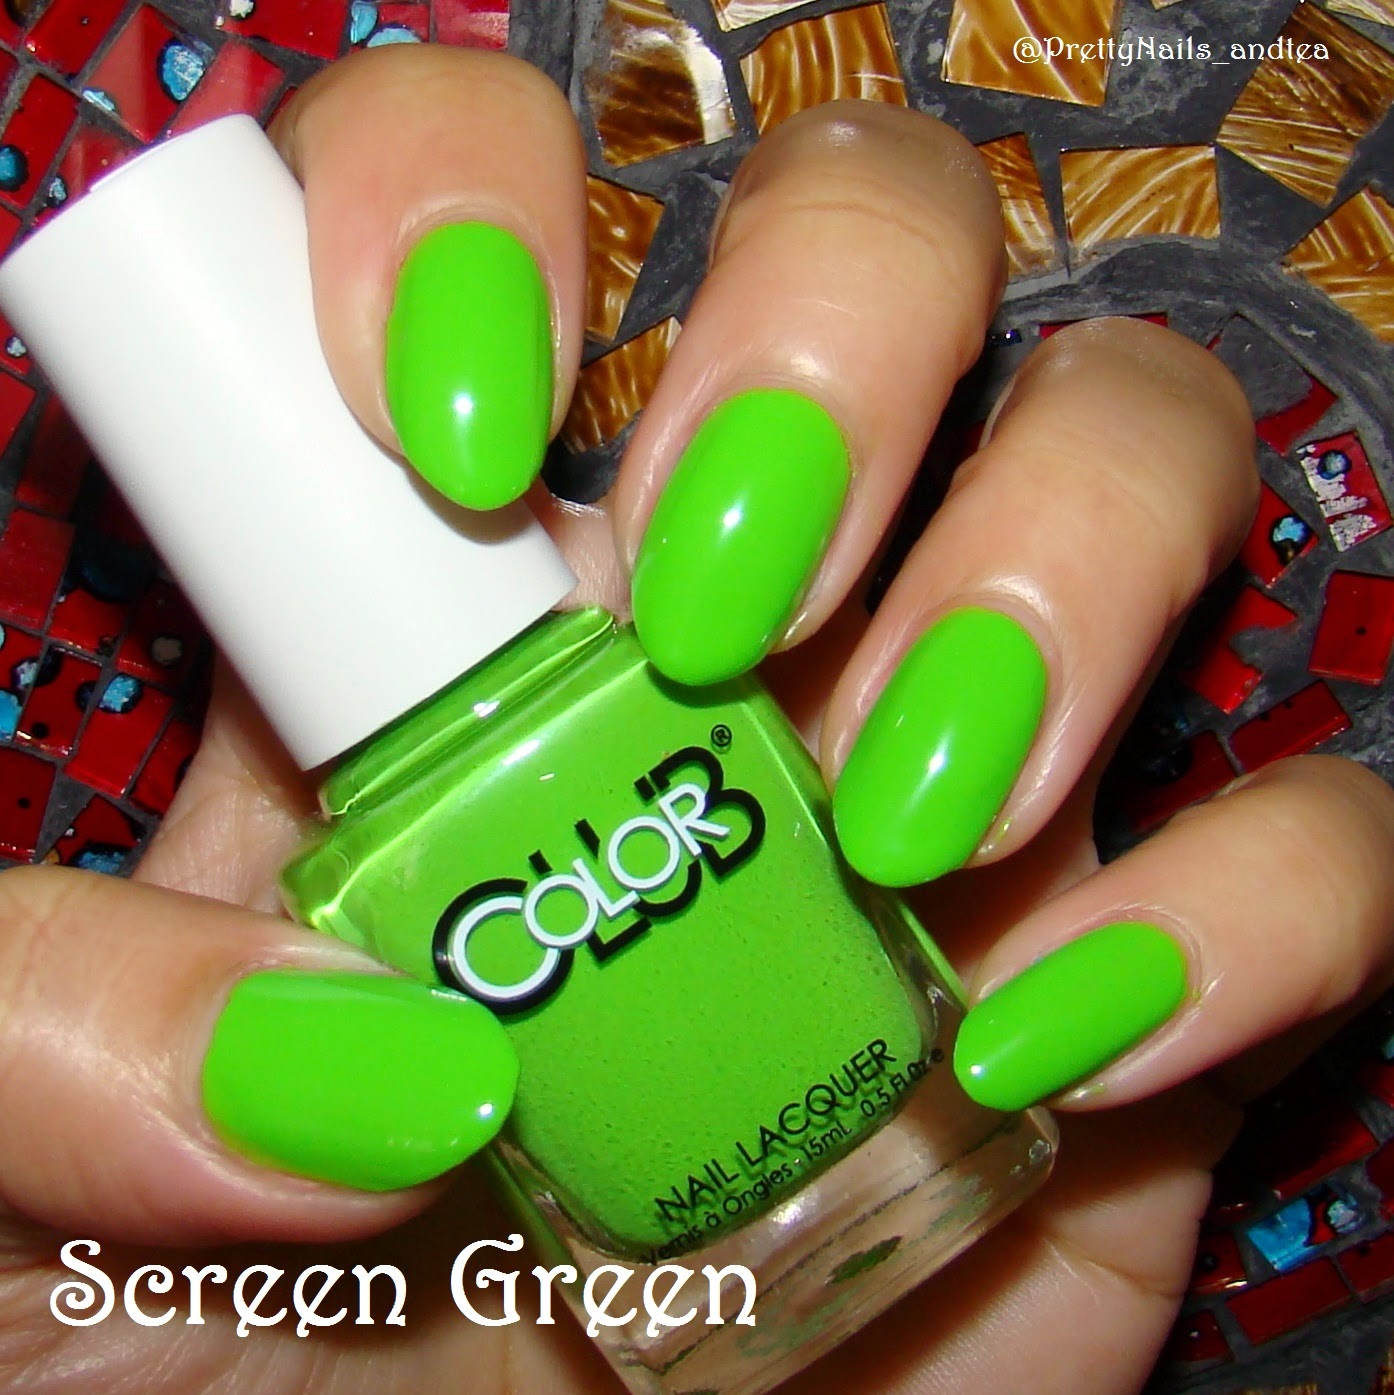 screen green color club yahoo